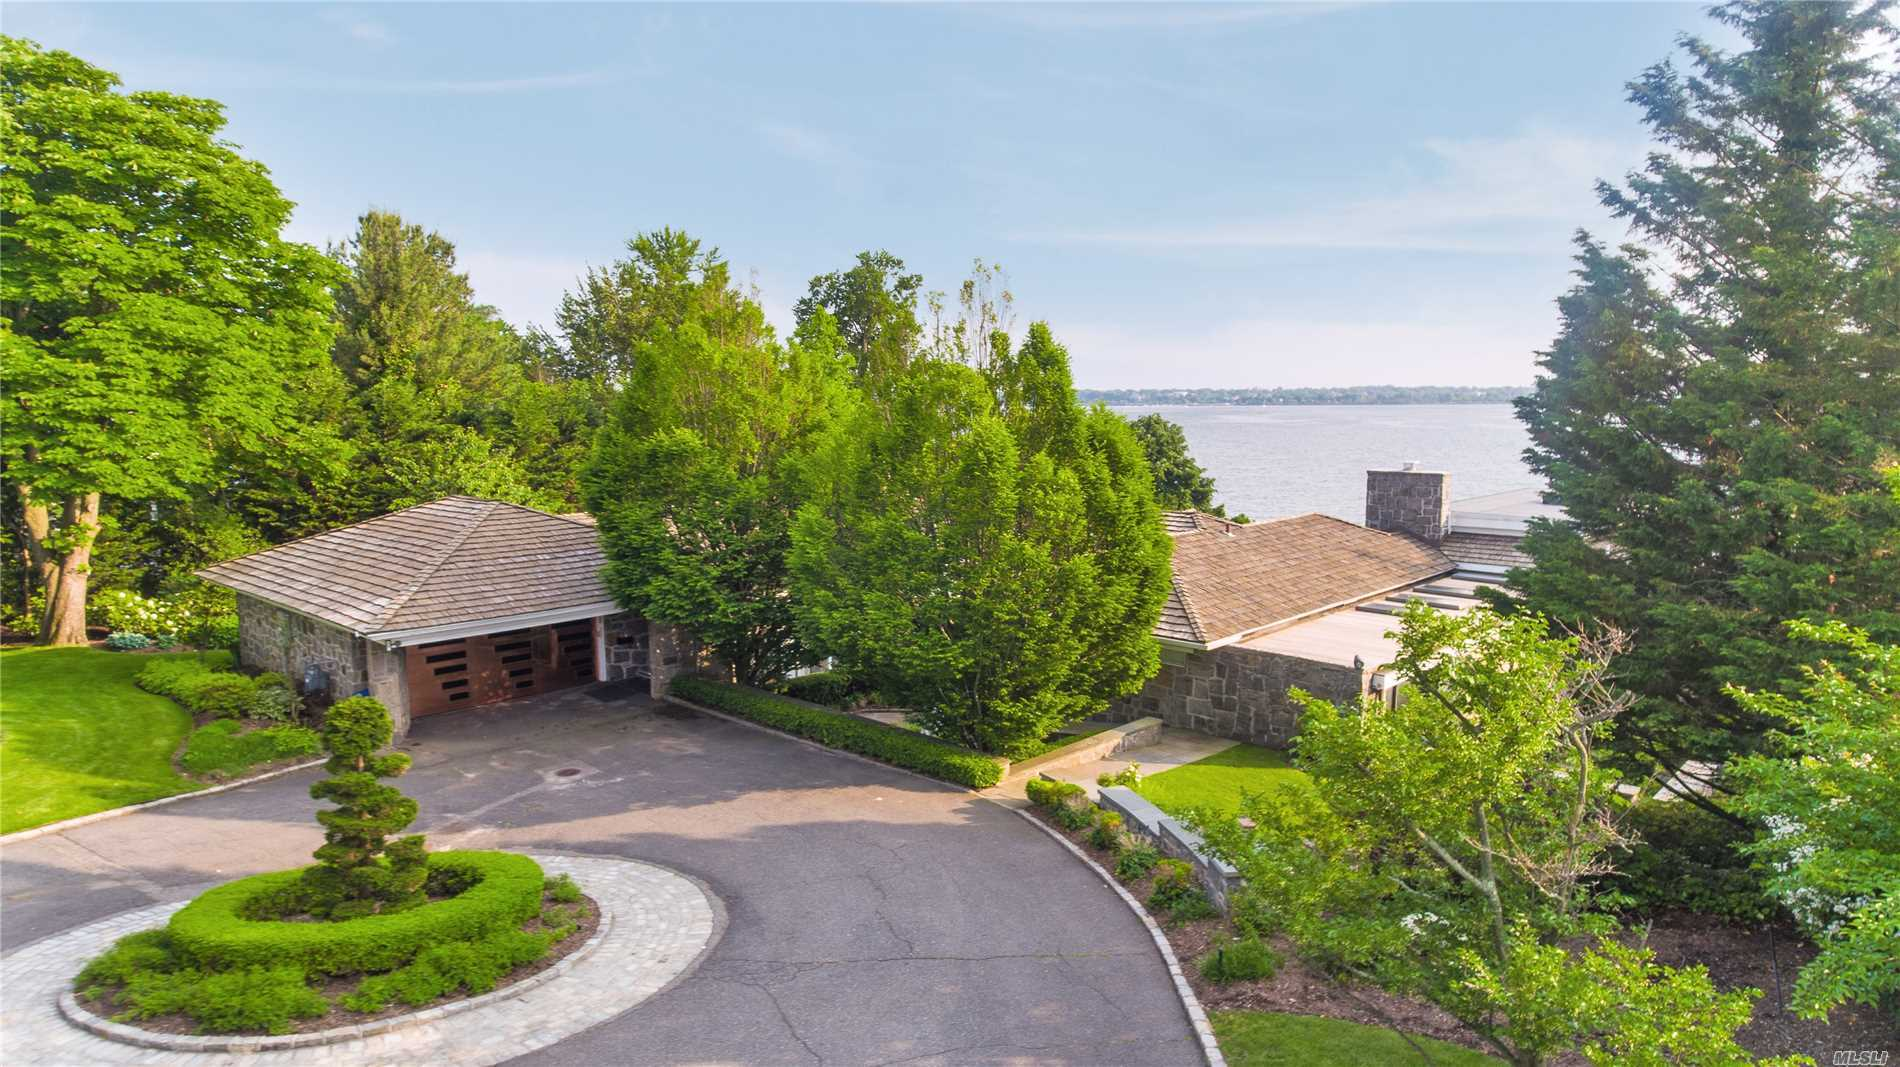 1.25 Waterfront Acre Retreat! This Gorgeous Modern Ranch is located in the prestigious Village of Kings Point. An entertainer's Dream with Panoramic West Side waterviews of the Manhattan Skyline & City Bridges. An Oasis built by renowned architect. Spectacular sunsets, luscious green lawns and specimen plantings. This Gem features a Master Suite, 3 Additional Bedrooms, 4 Full Baths and 2 Half Baths, Lovely Eat-in-Kitchen, Spacious Living room with fireplace, Full Generator, Pool & so much more.